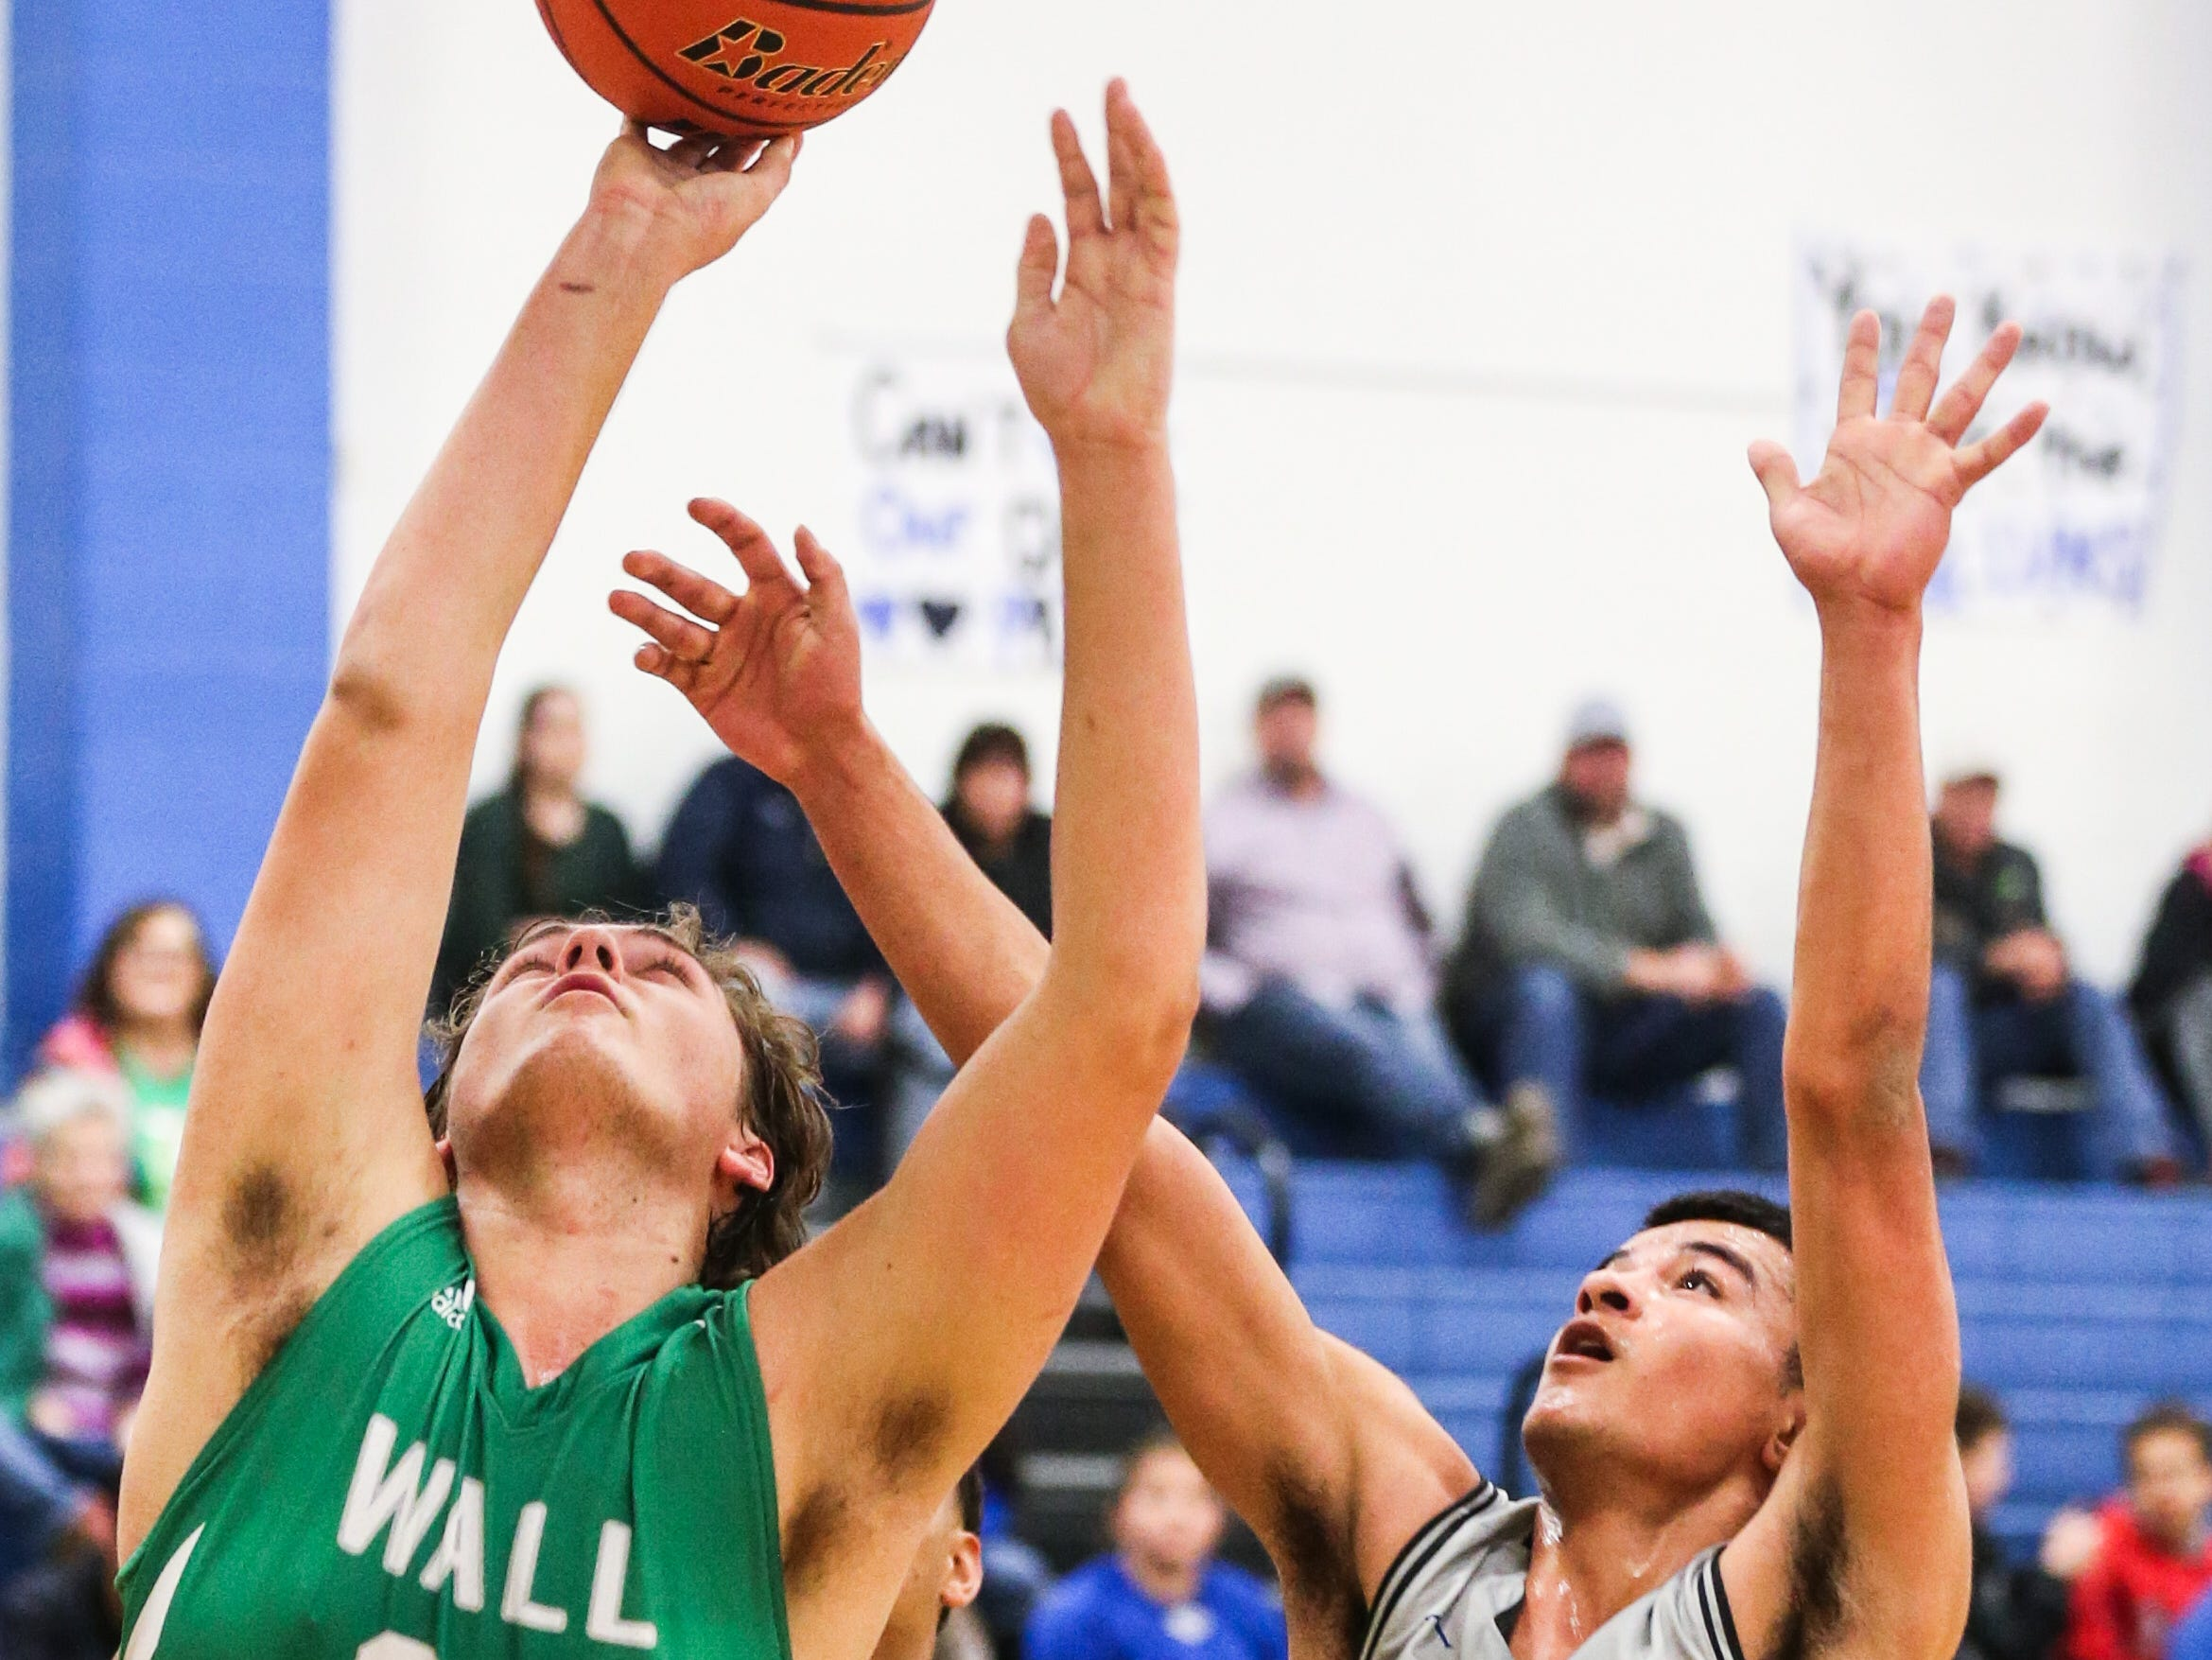 Wall's Colton Chitsey tries to shoot against Lake View Friday, Dec. 14, 2018, at Lake View High School.